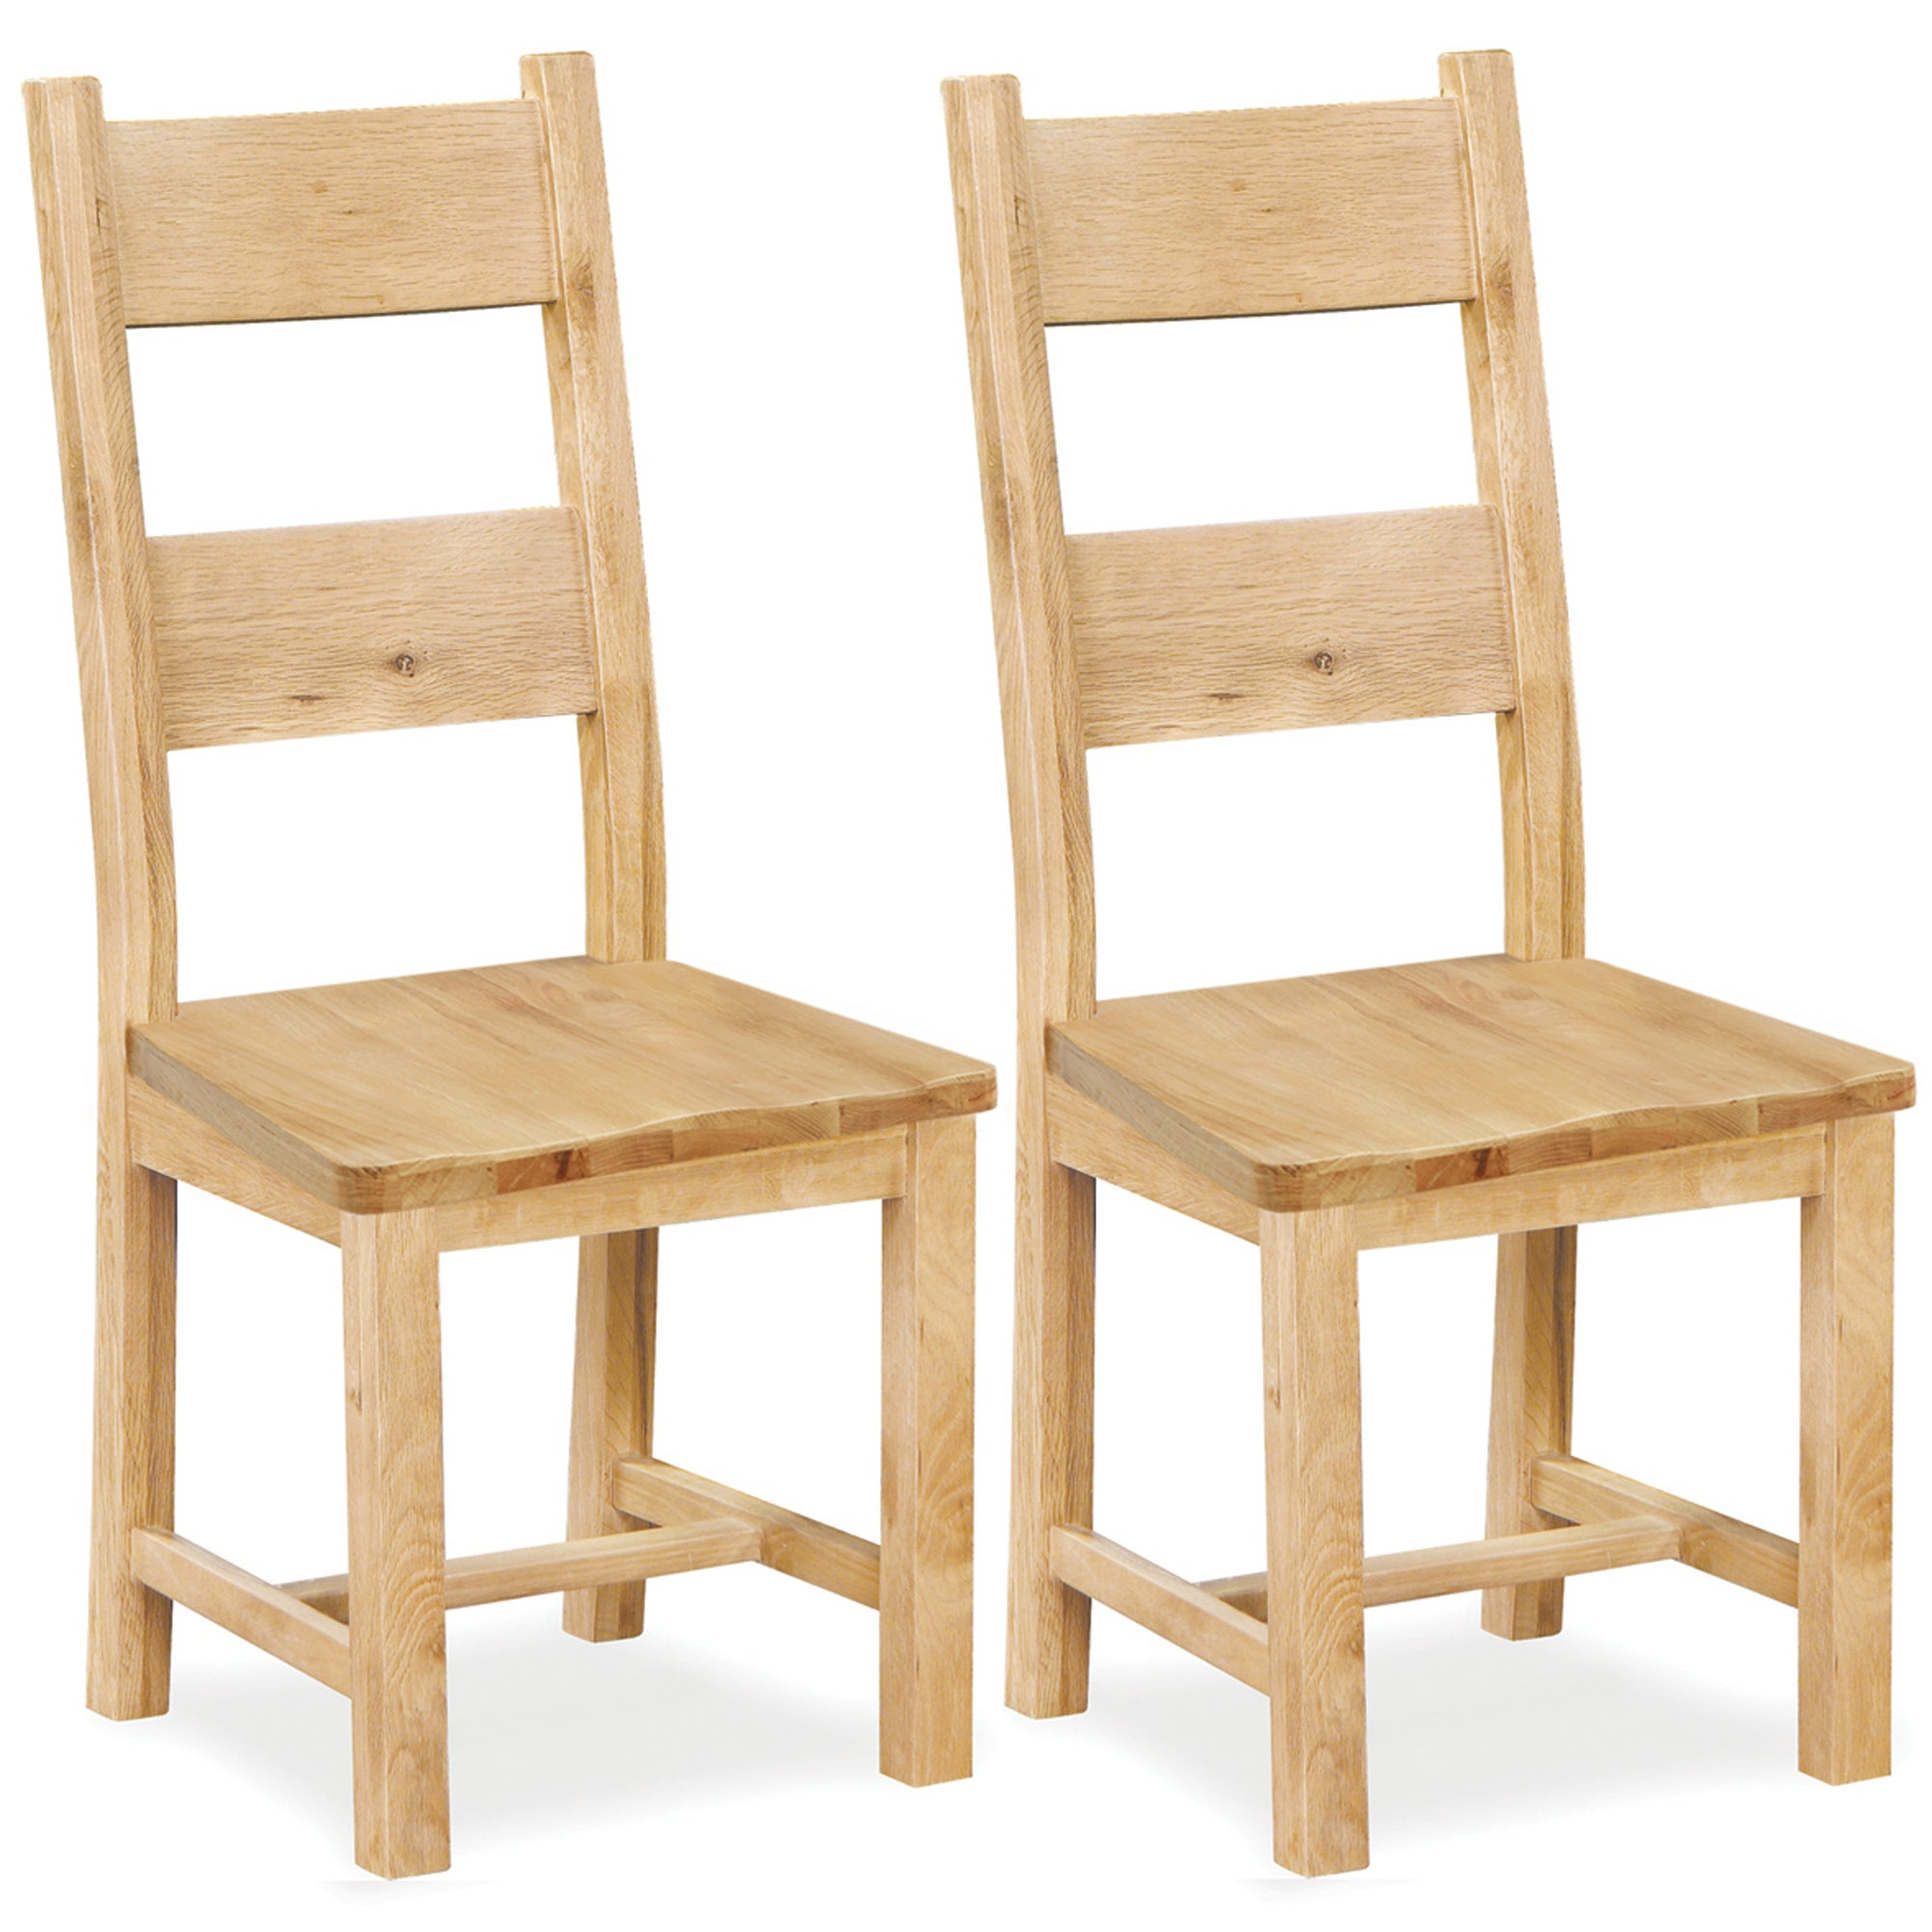 Harrogate Pair of Oak Dining Chairs